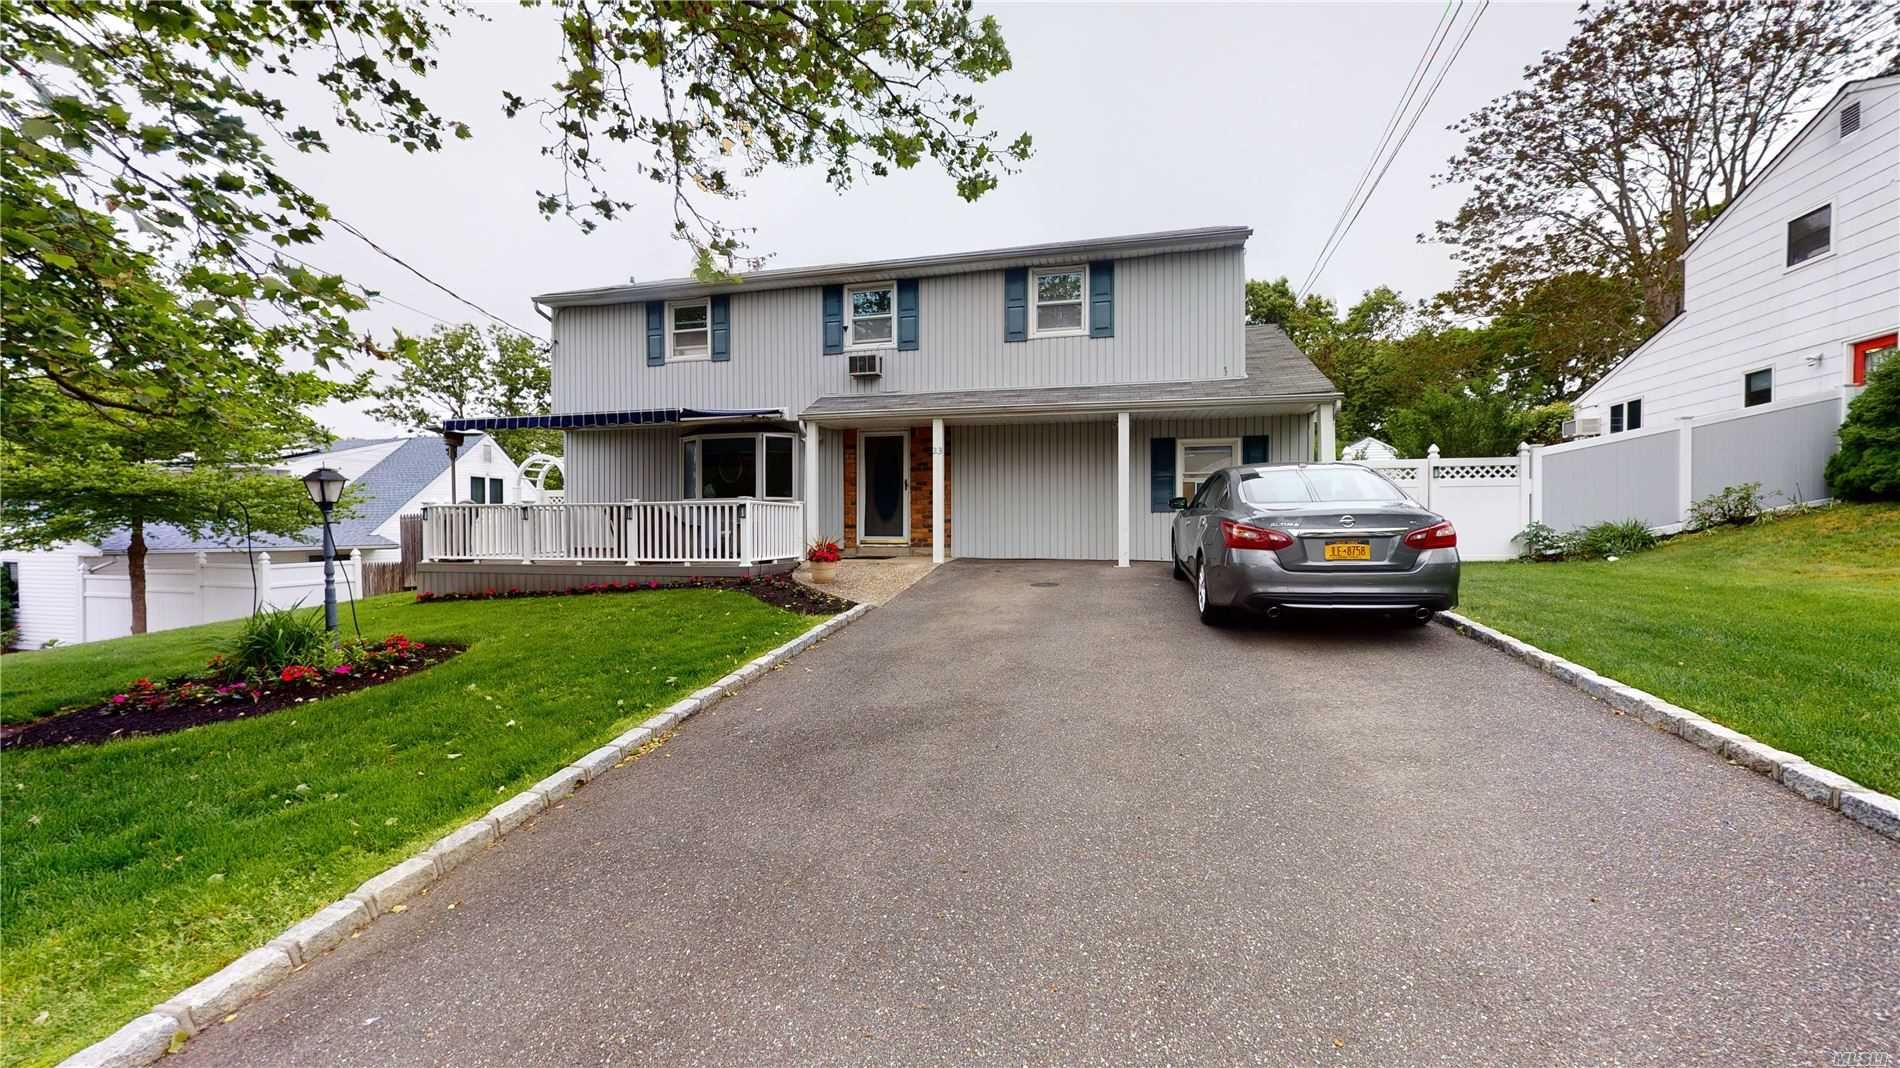 23 Washington Heights St, Selden, NY 11784 - MLS#: 3218618